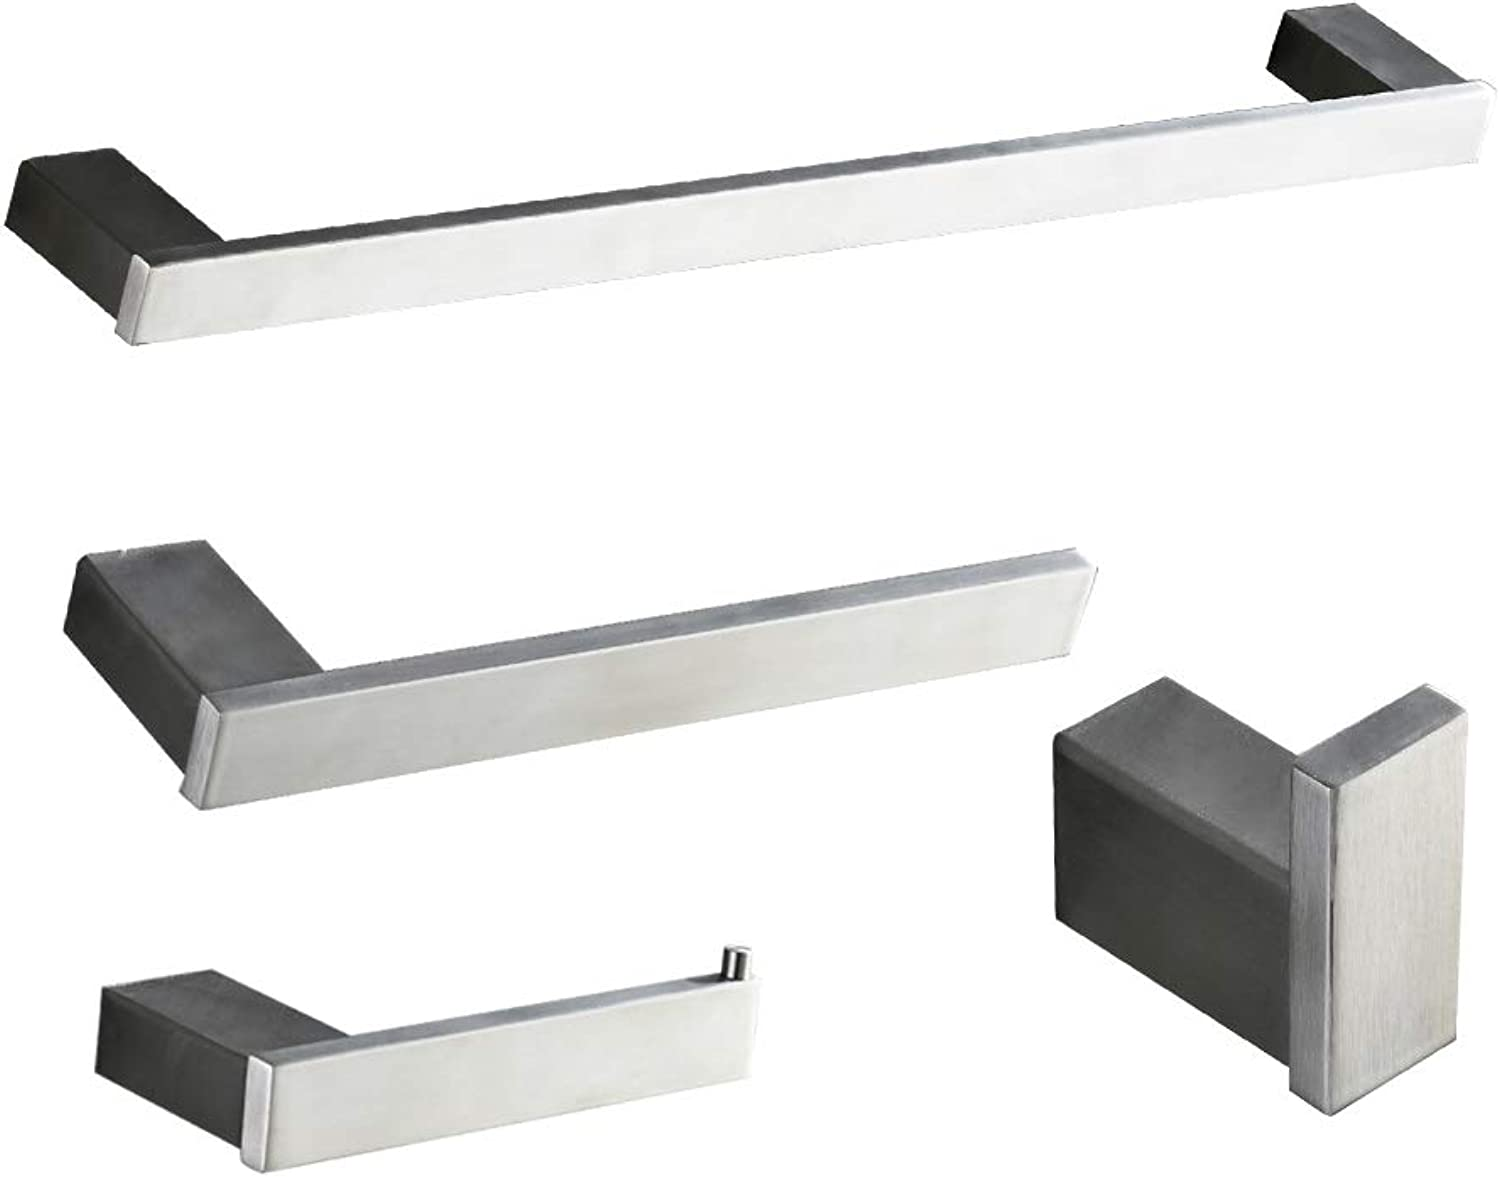 BESy 4 Pieces Bathroom Hardware Accessories Set Stainless Steel with 24 Inch Towel Bar, 10 Inch Towel Bar, Toilet Paper Holder, Towel Hook,Wall Mounted Hotel Style Bath Fixtures Set, Brushed Nickel